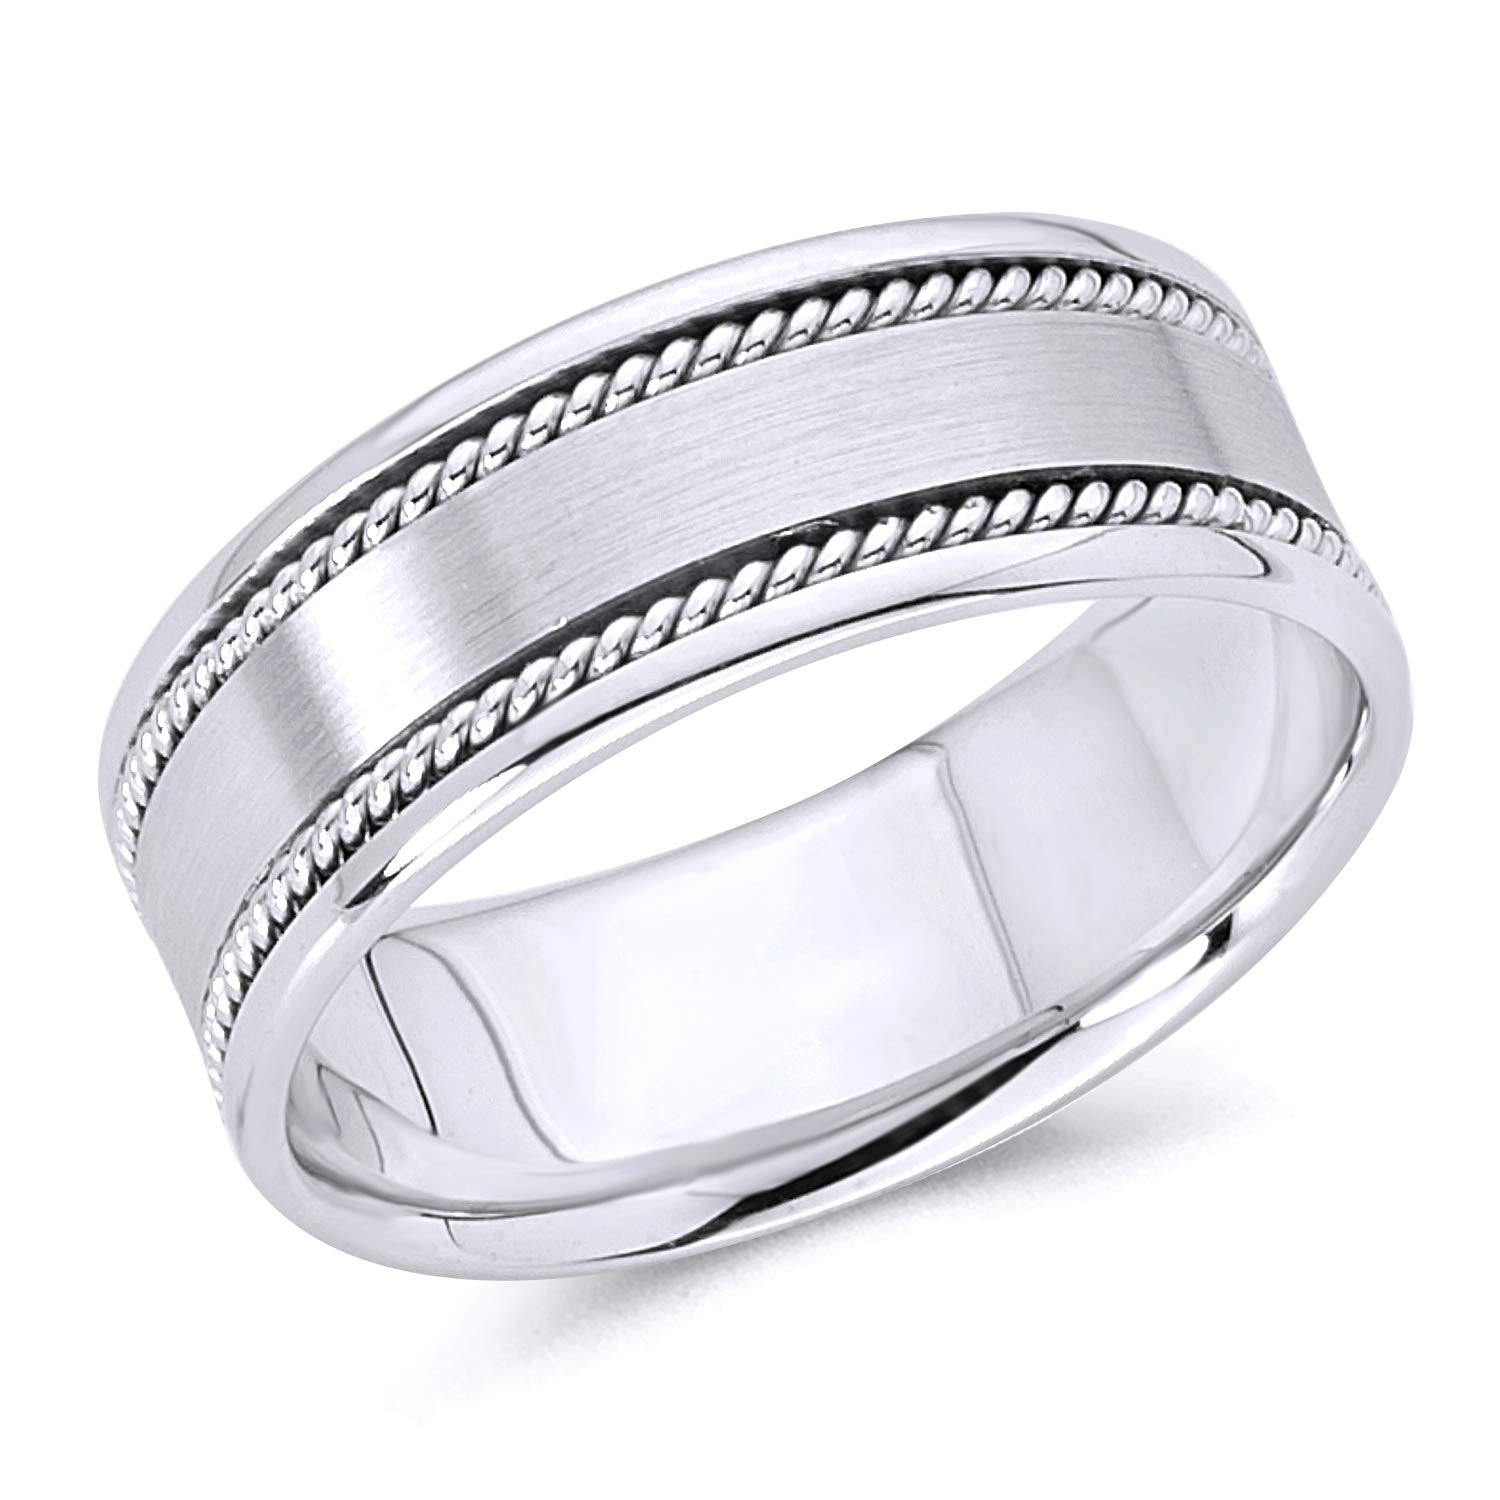 Wellingsale 14k White Gold Polished Satin 8MM Rope Design Comfort Fit Wedding Band Ring - Size 11.5 by Wellingsale